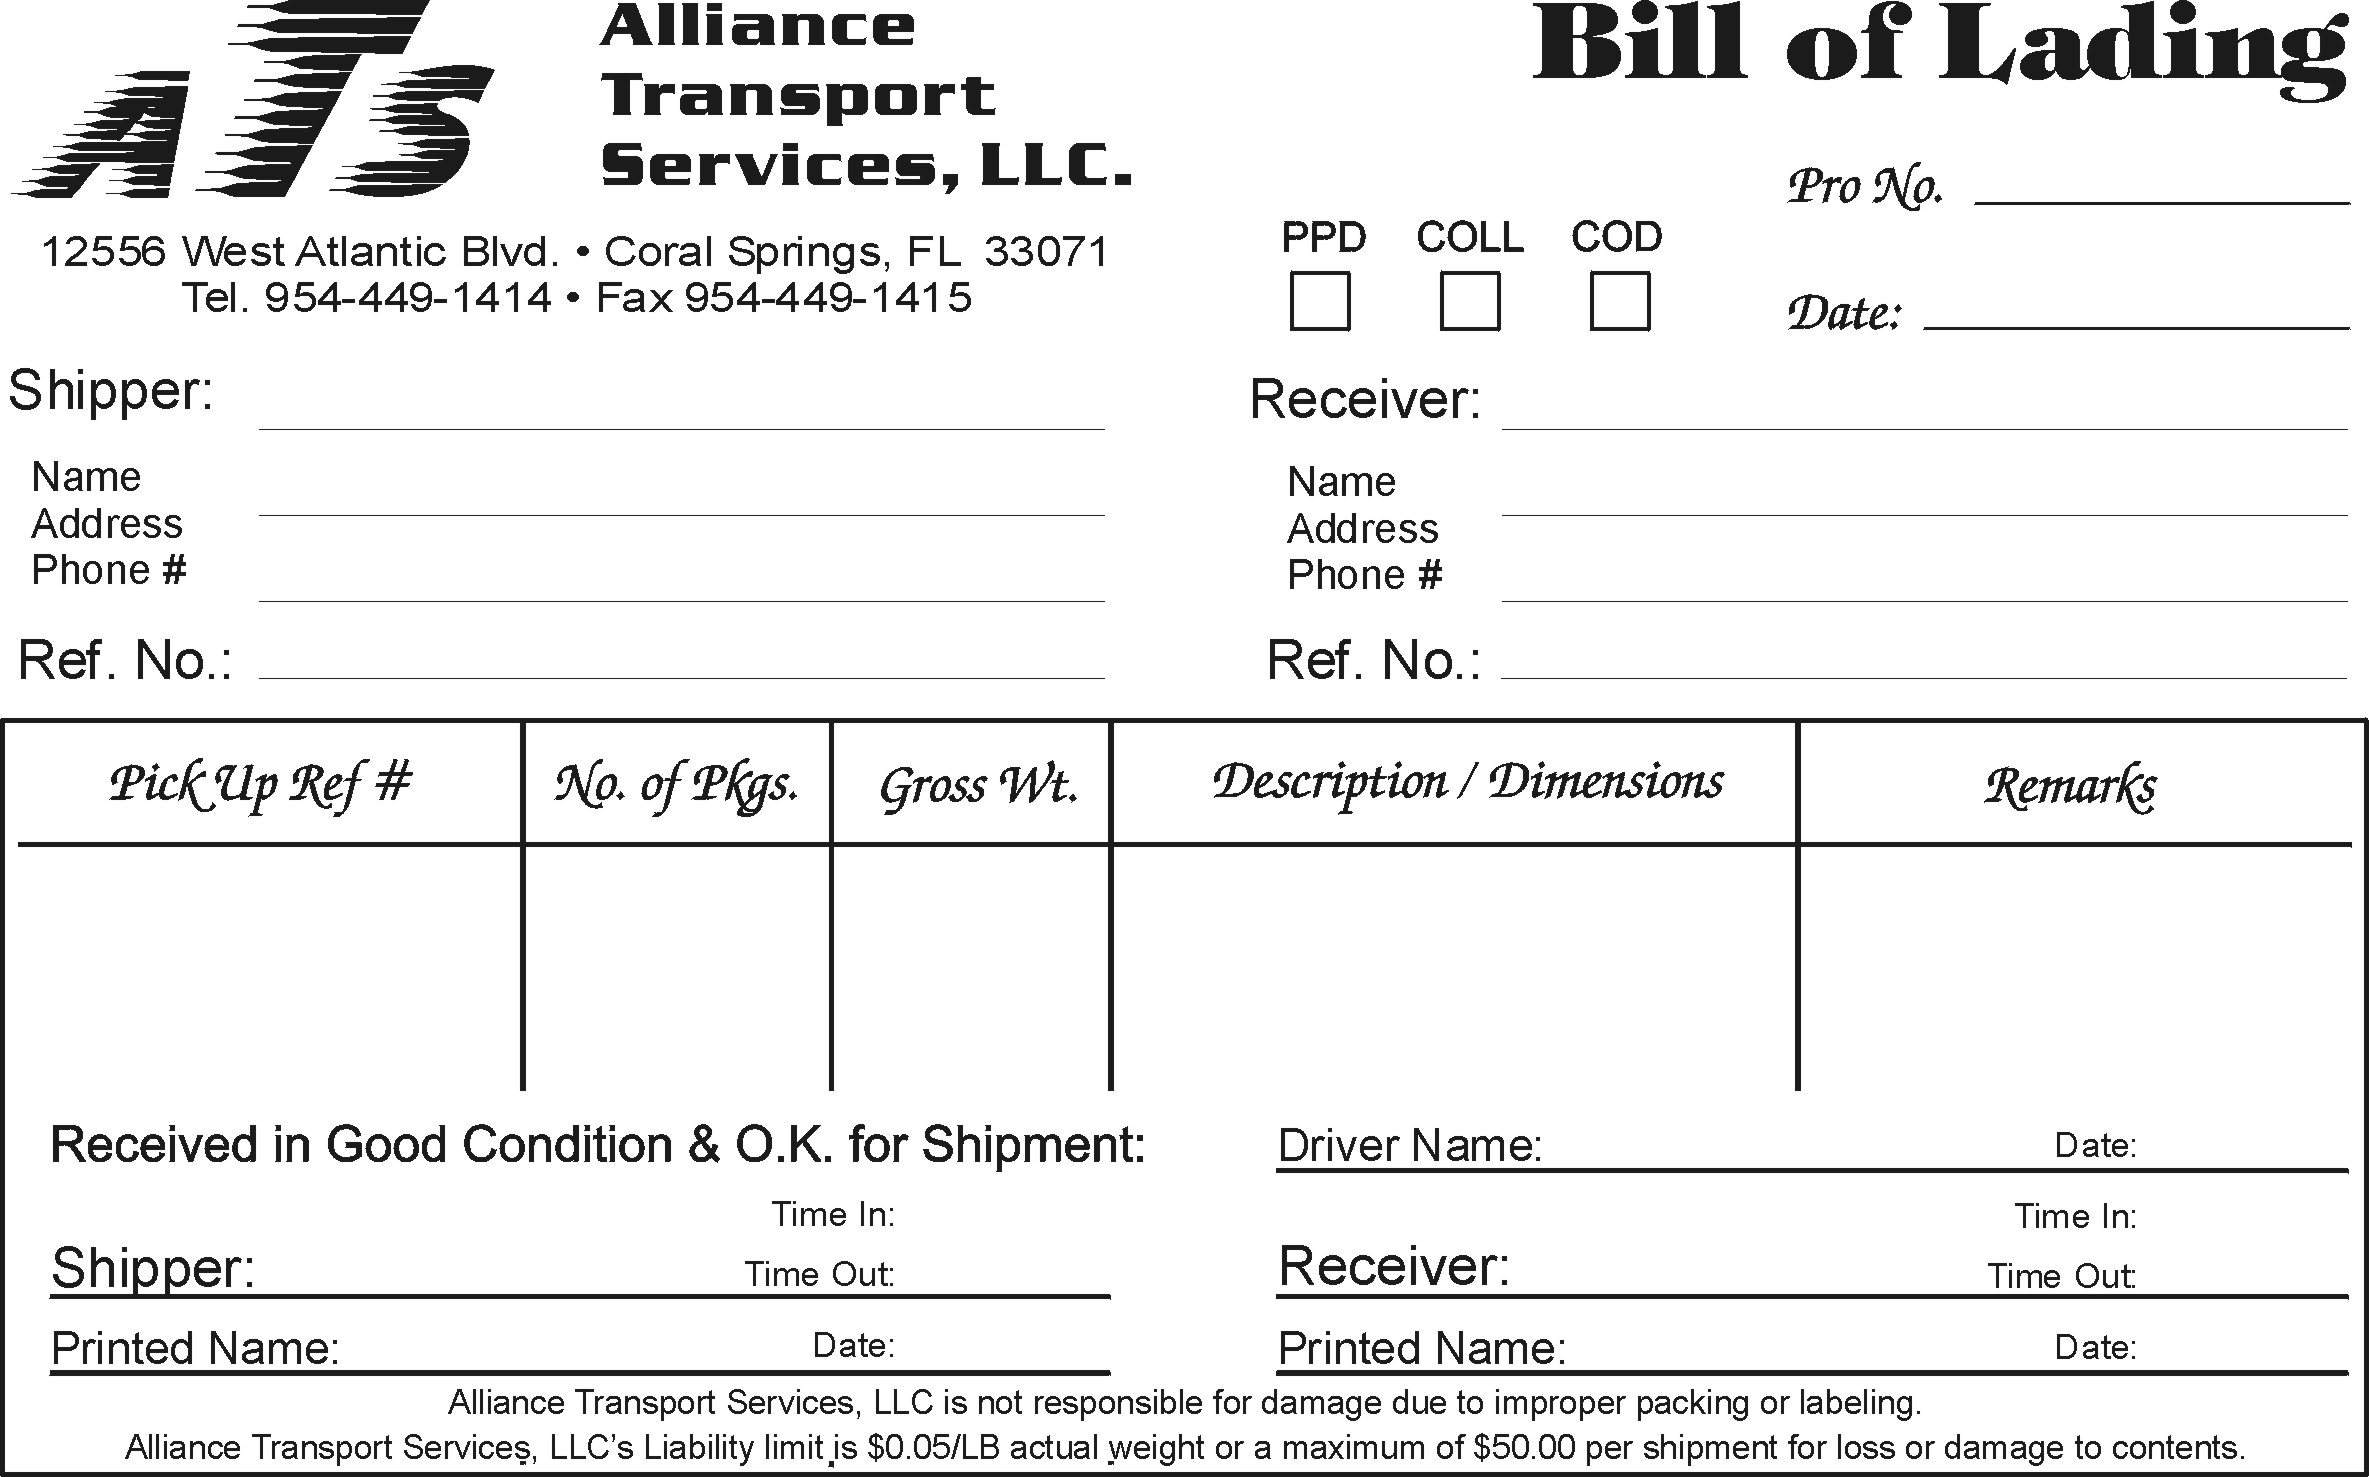 tracing bills of lading to sales invoices provides